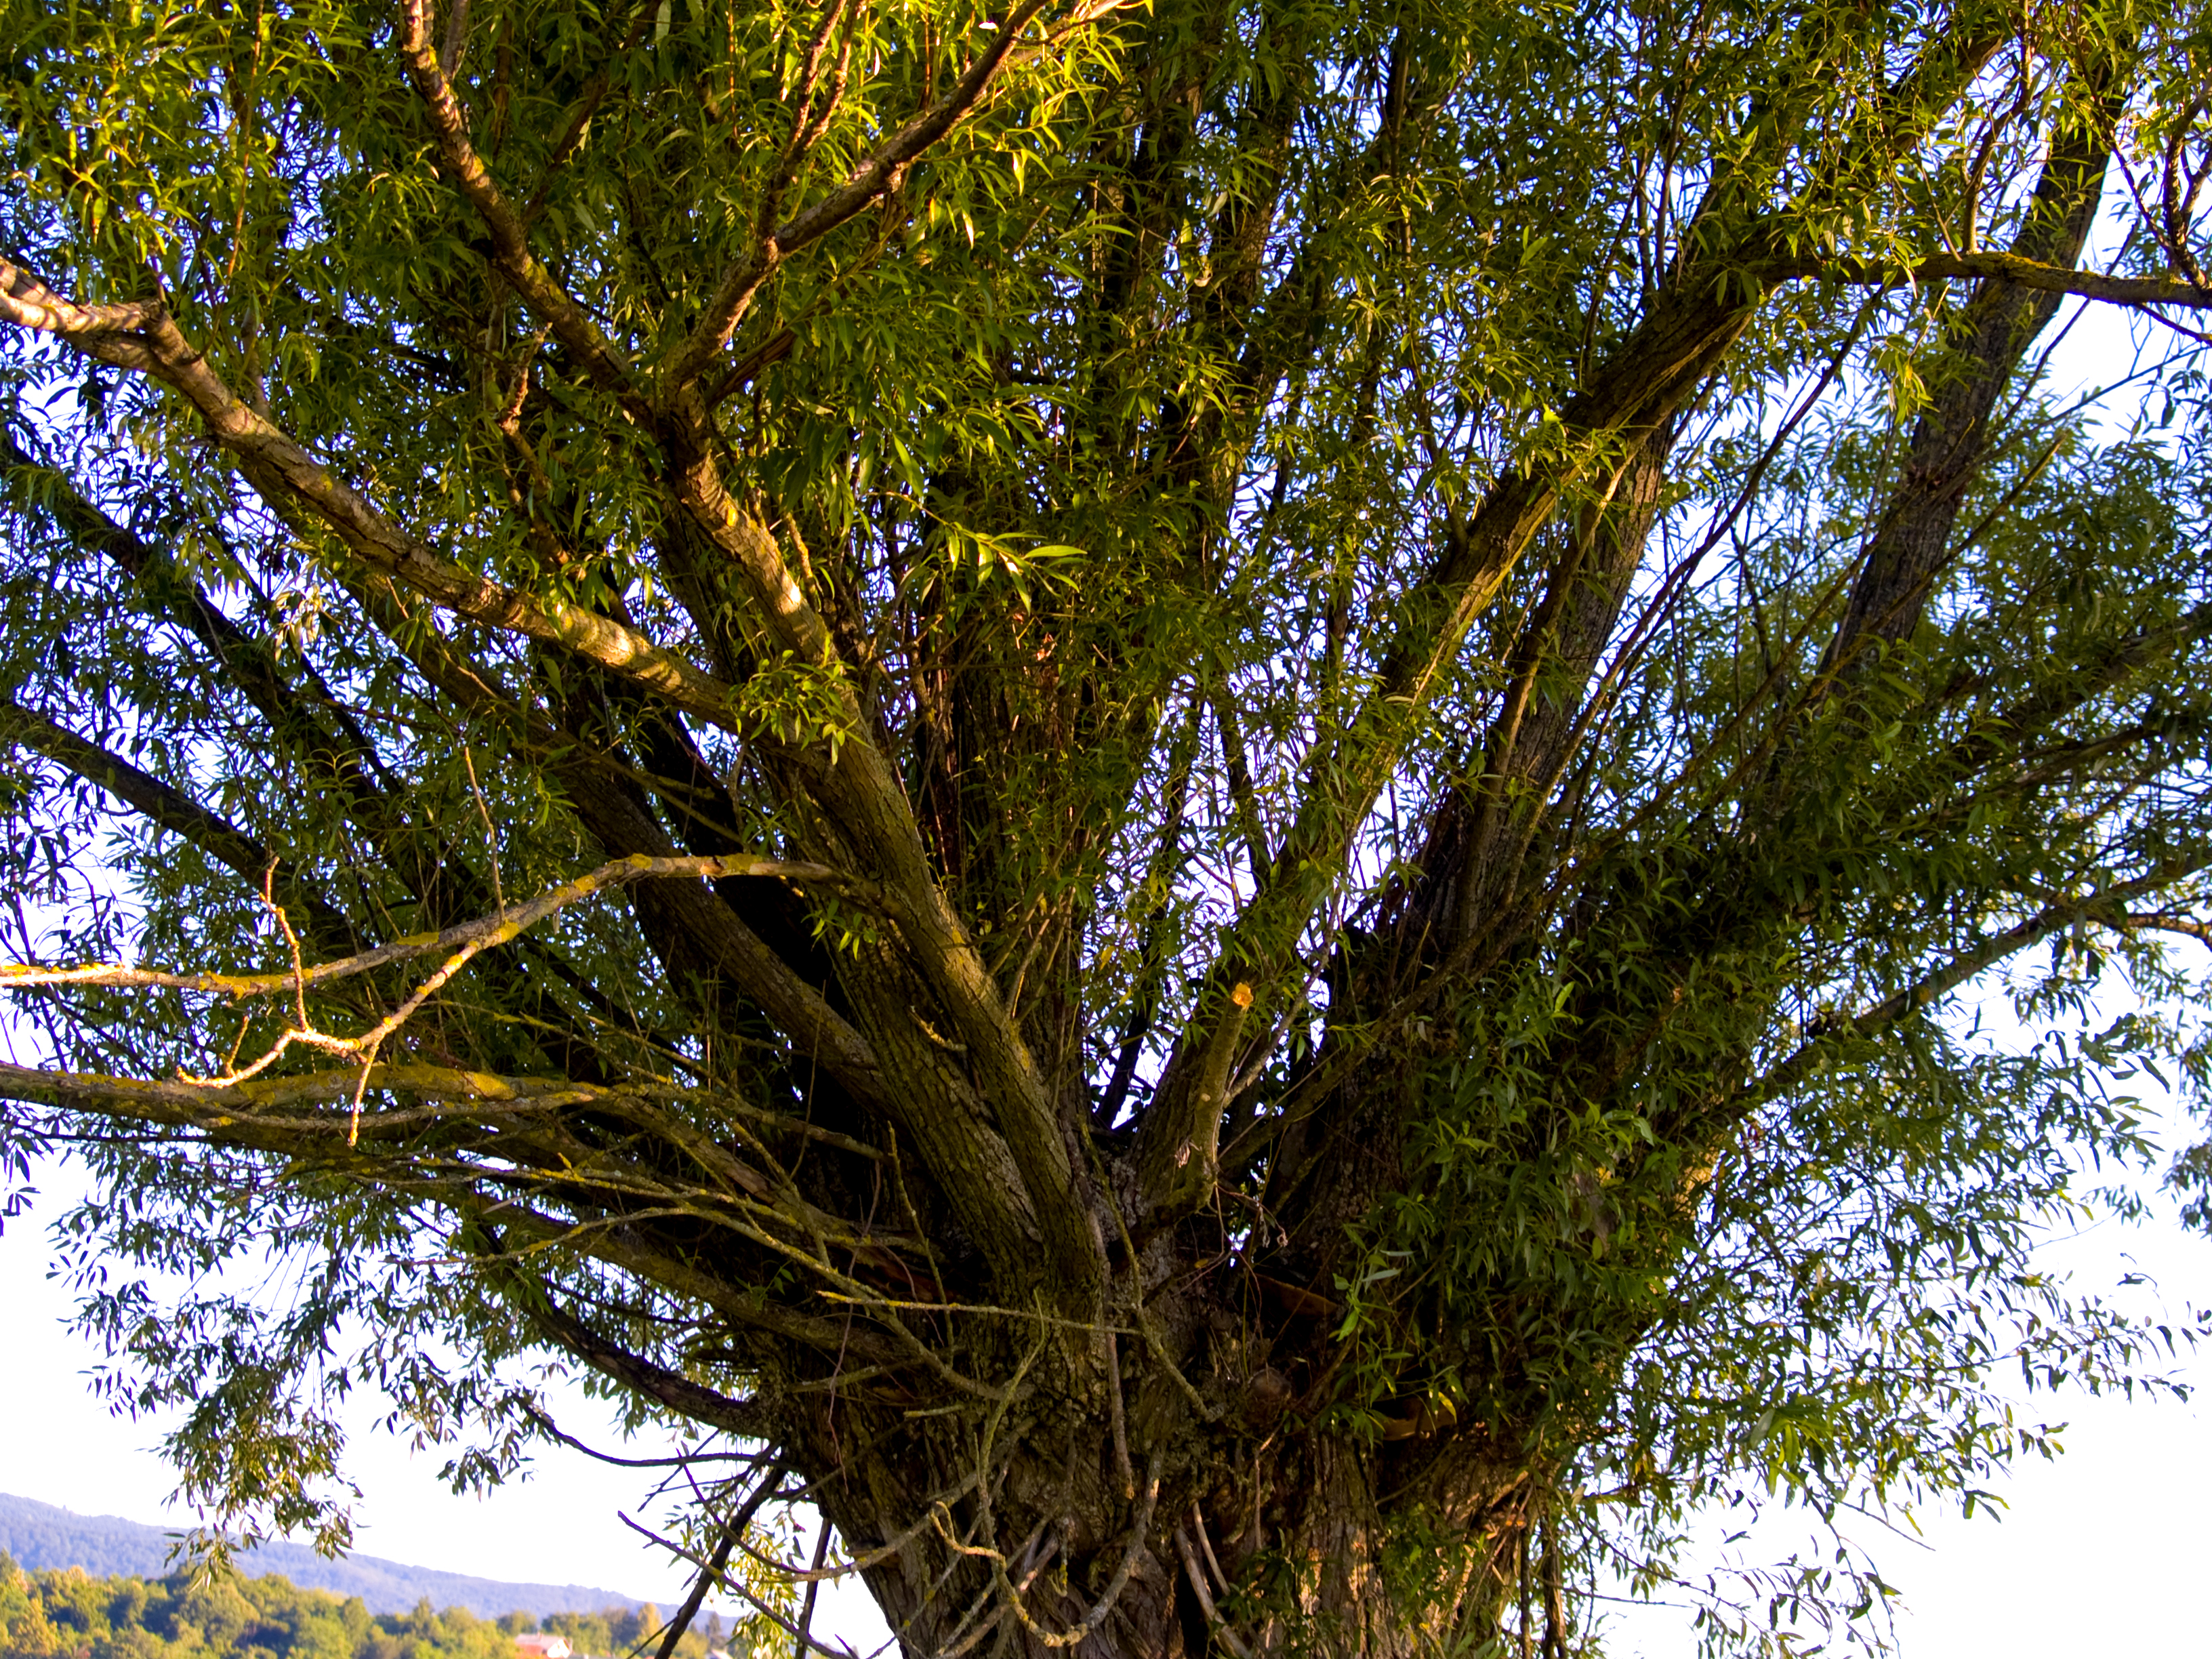 Tree, Abstract, Branches, Green, Grow, HQ Photo